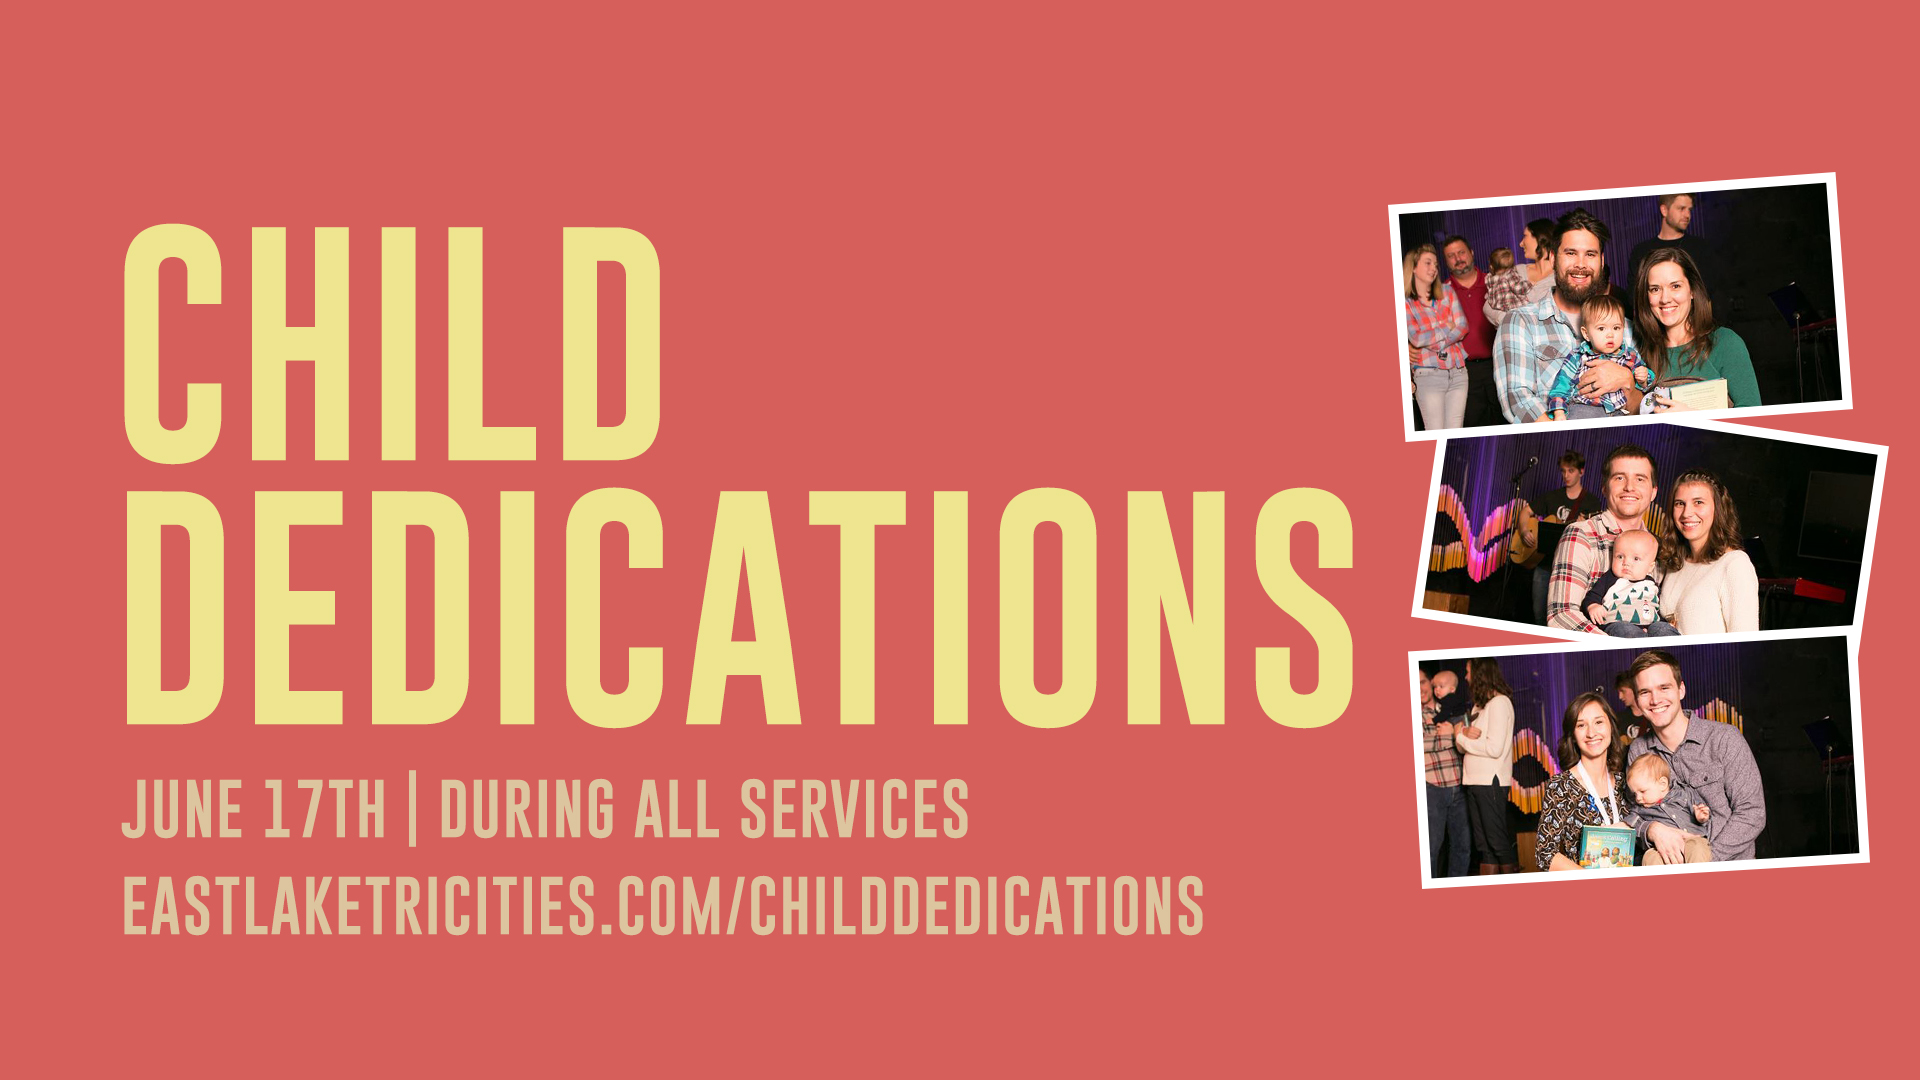 Child dedications 2